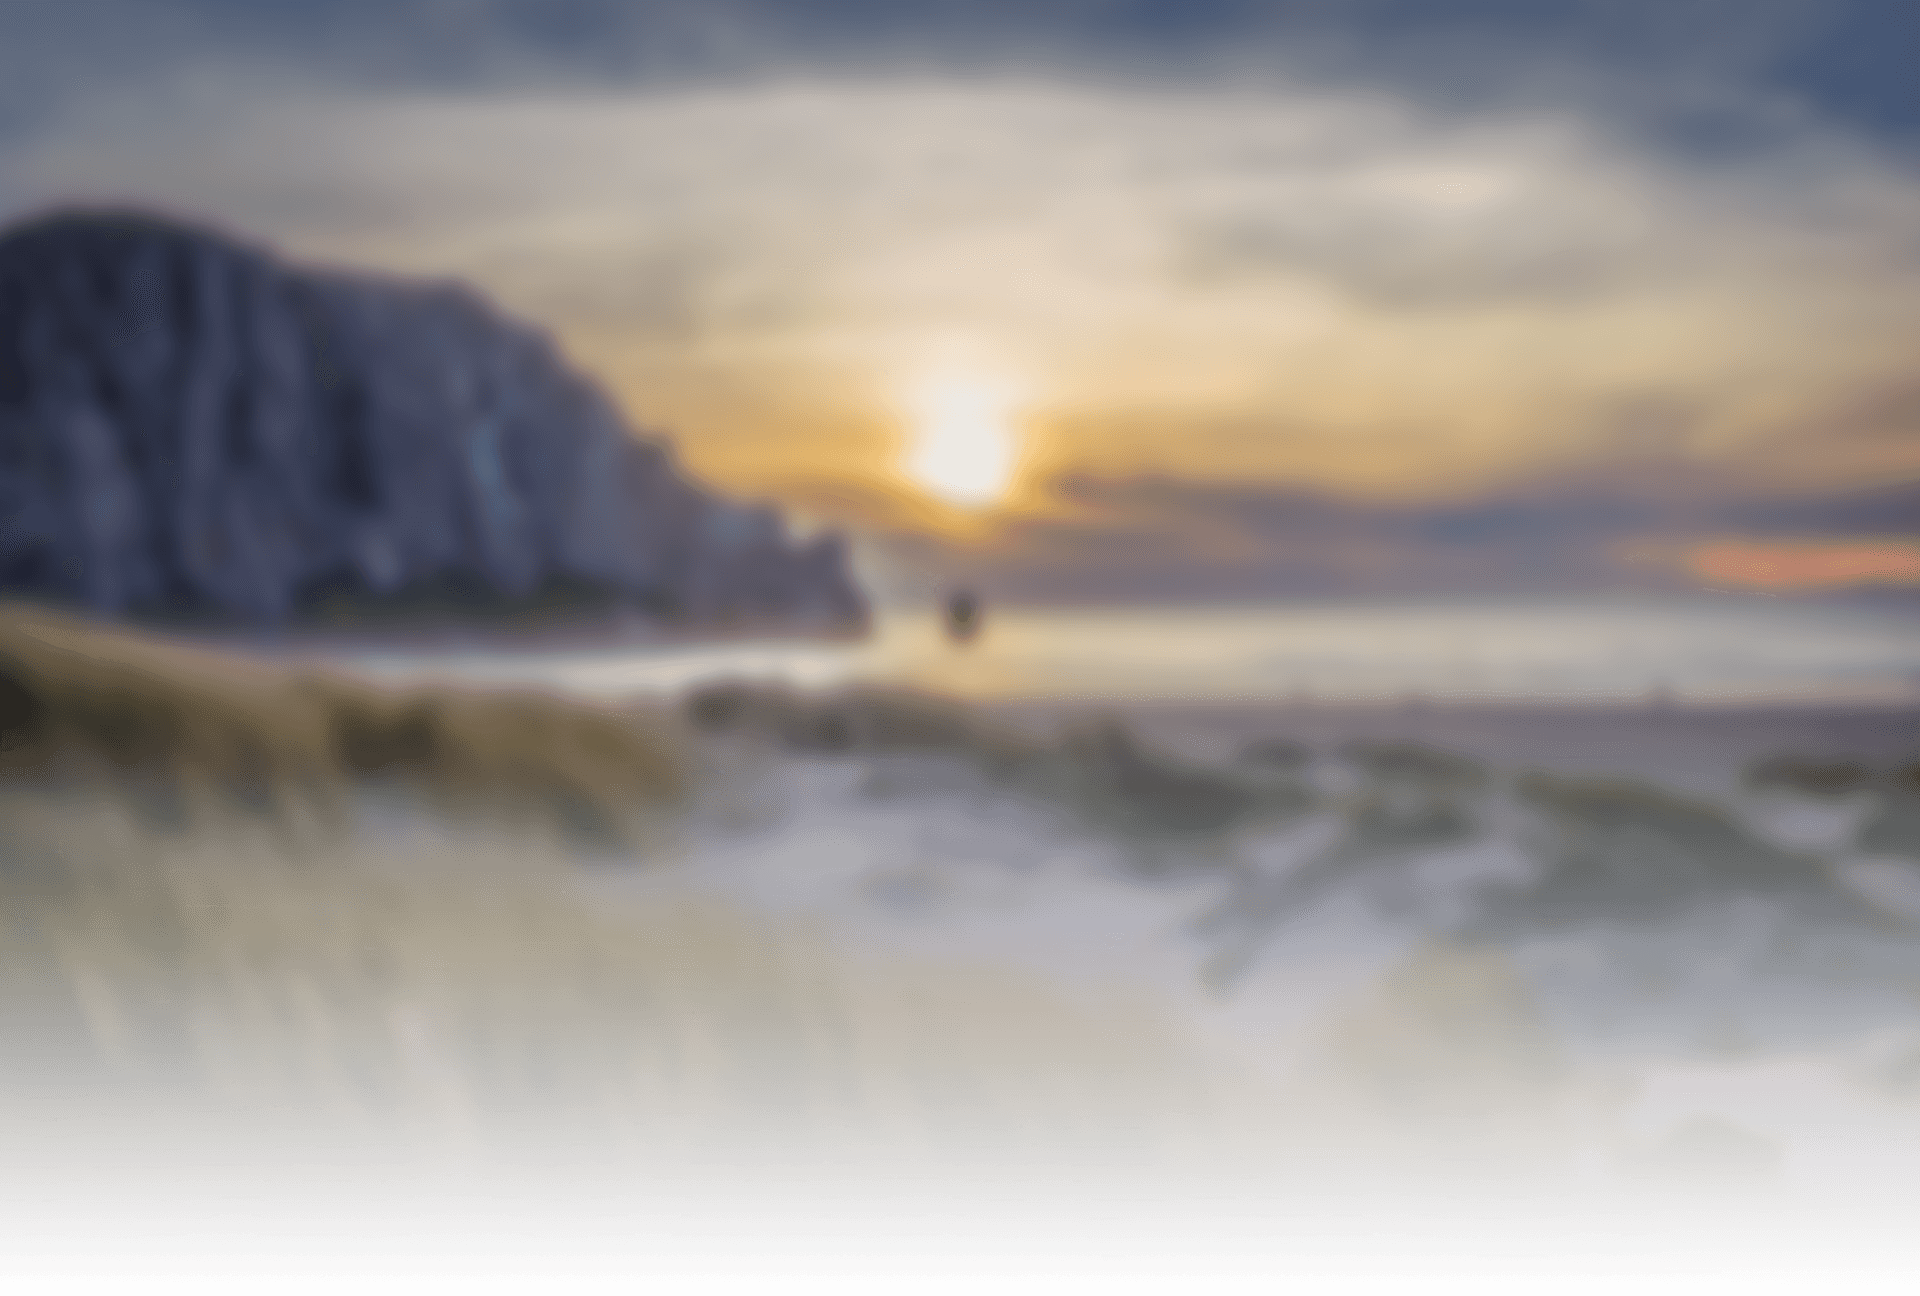 Blurred image of Morro Rock